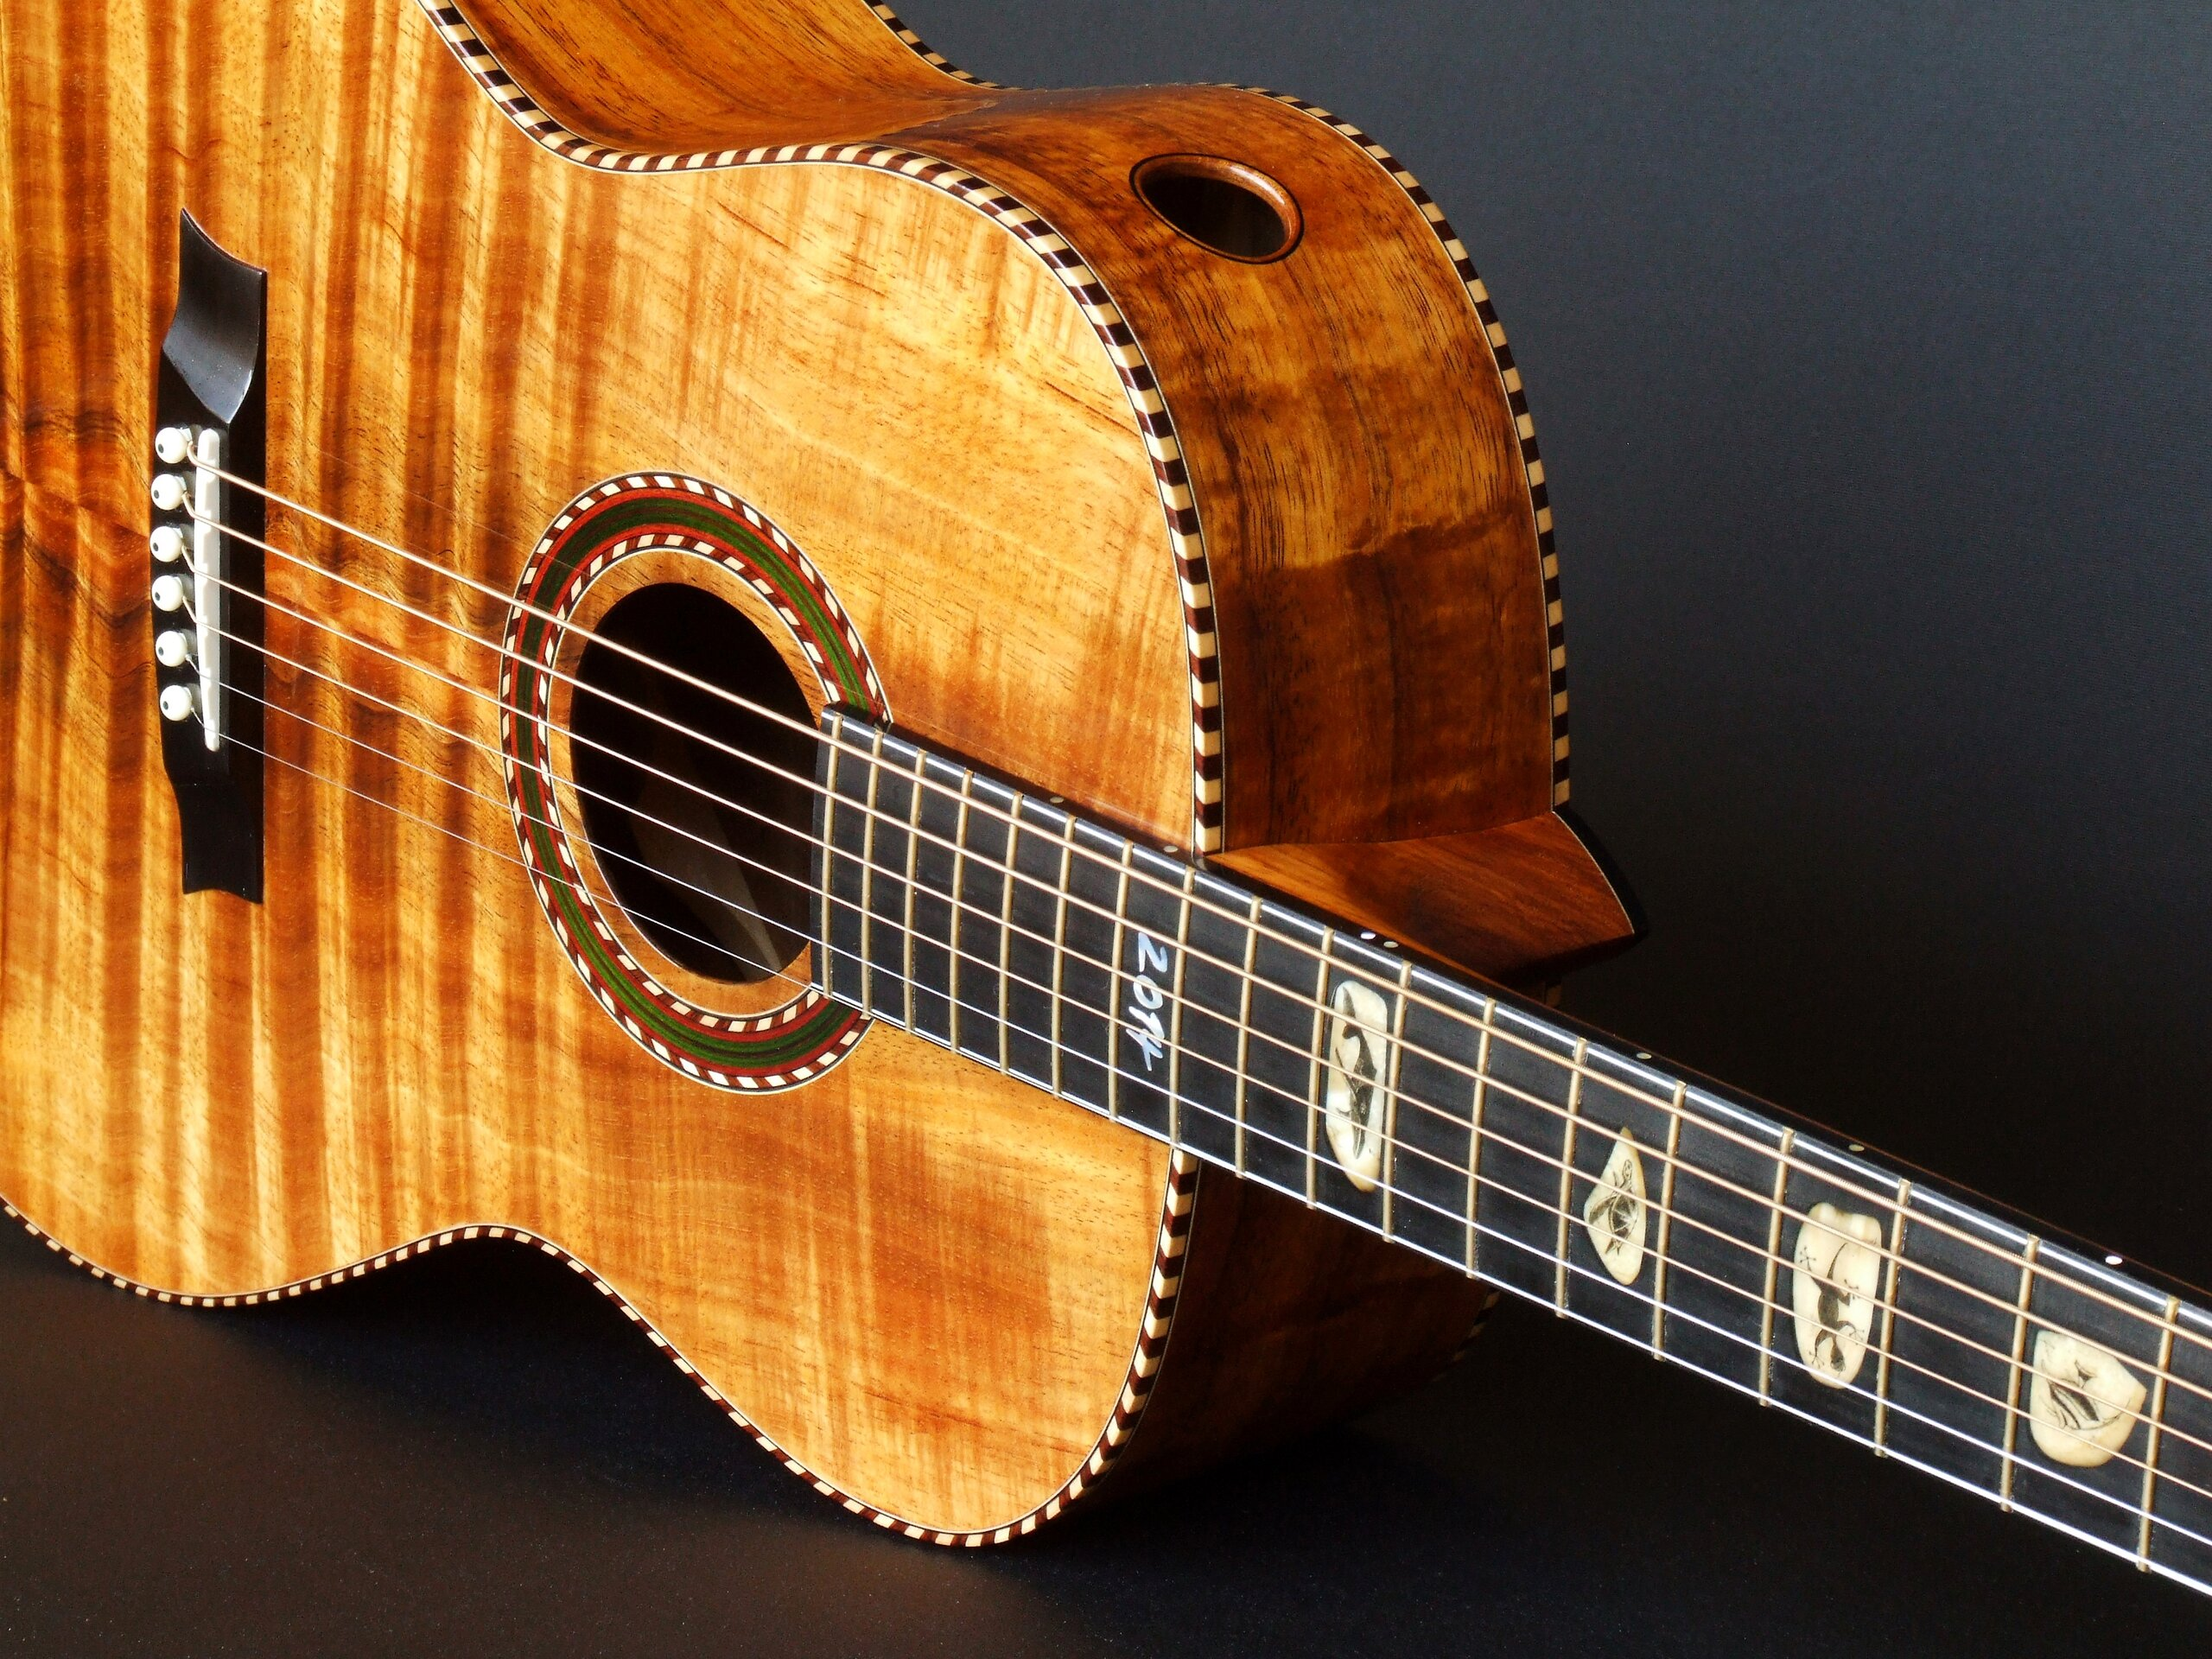 Gore all Koa guitar, rope binding, scrimshaw fret markers and sound port